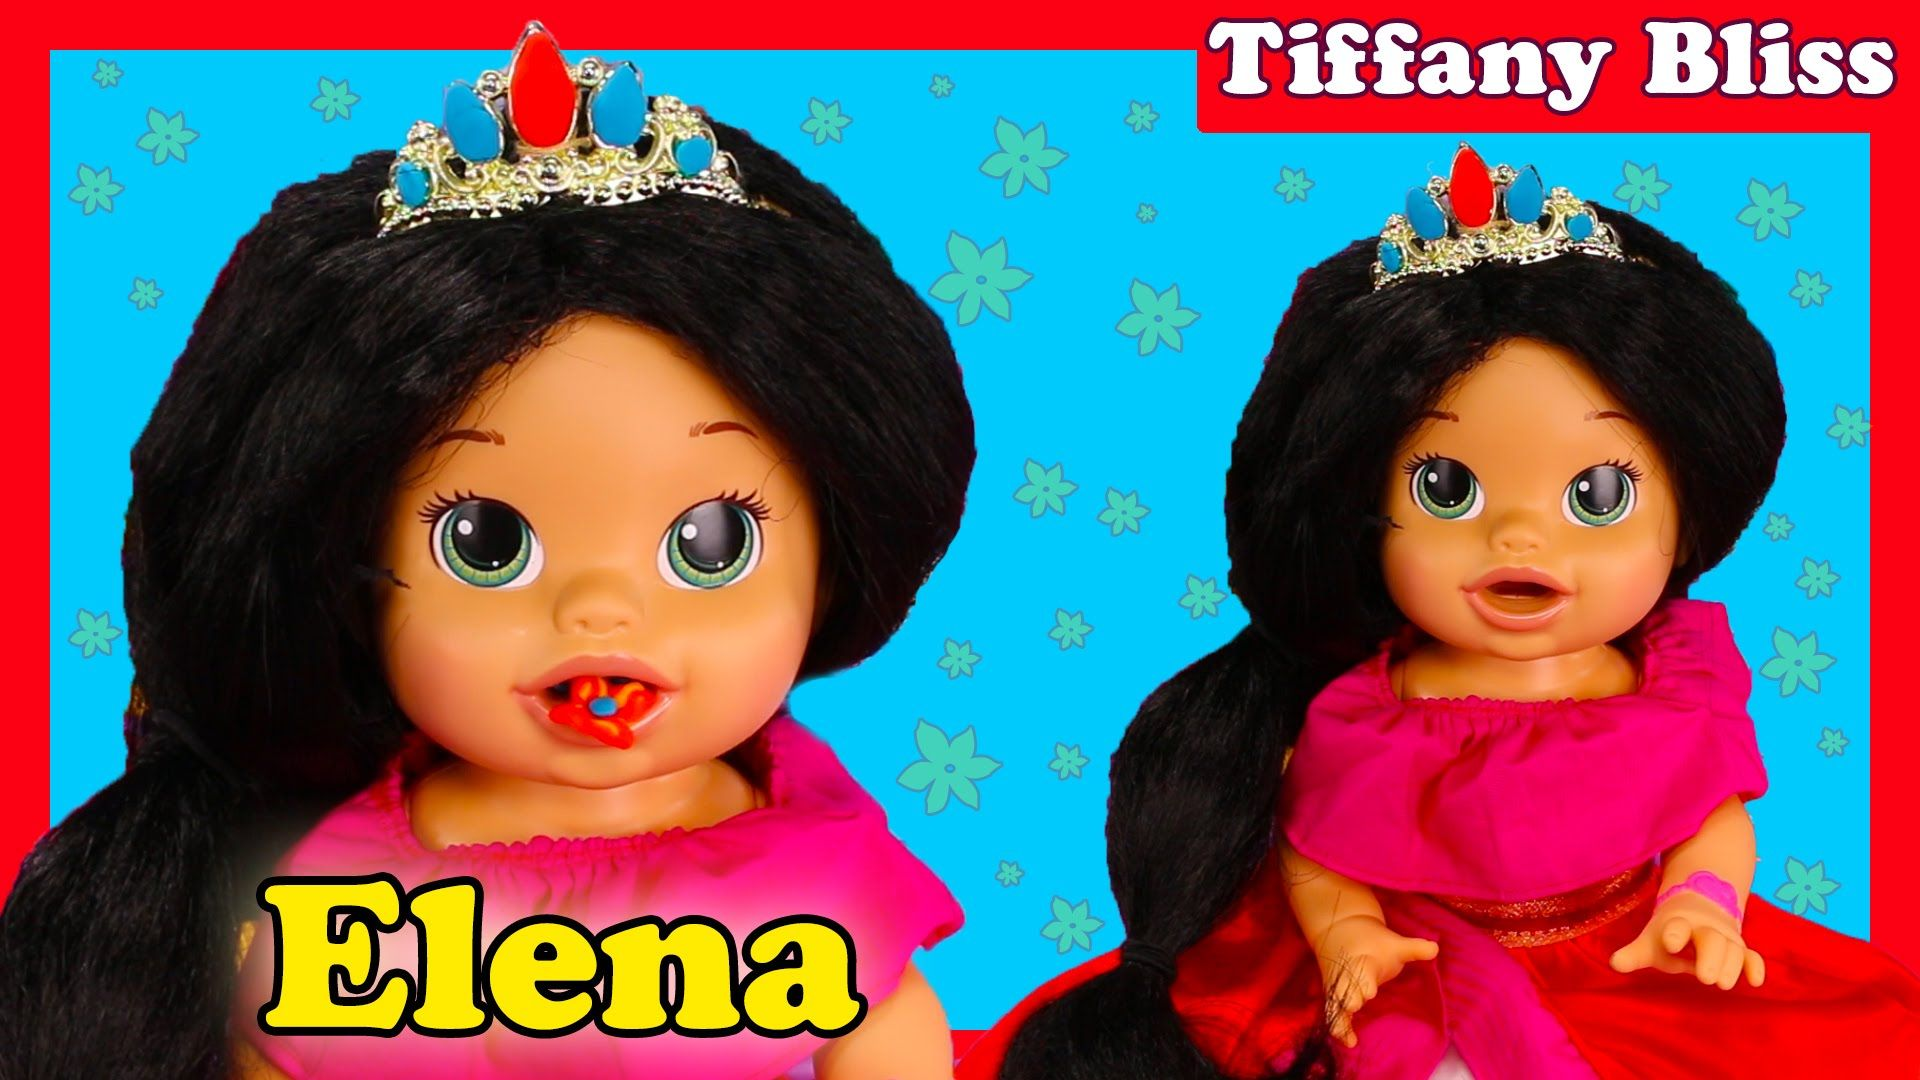 Princess Elena Of Avalor Custom Baby Alive Doll Eats Play Doh Poops Blind Bags Surprise Toys Baby Alive Dolls Baby Alive Custom Baby